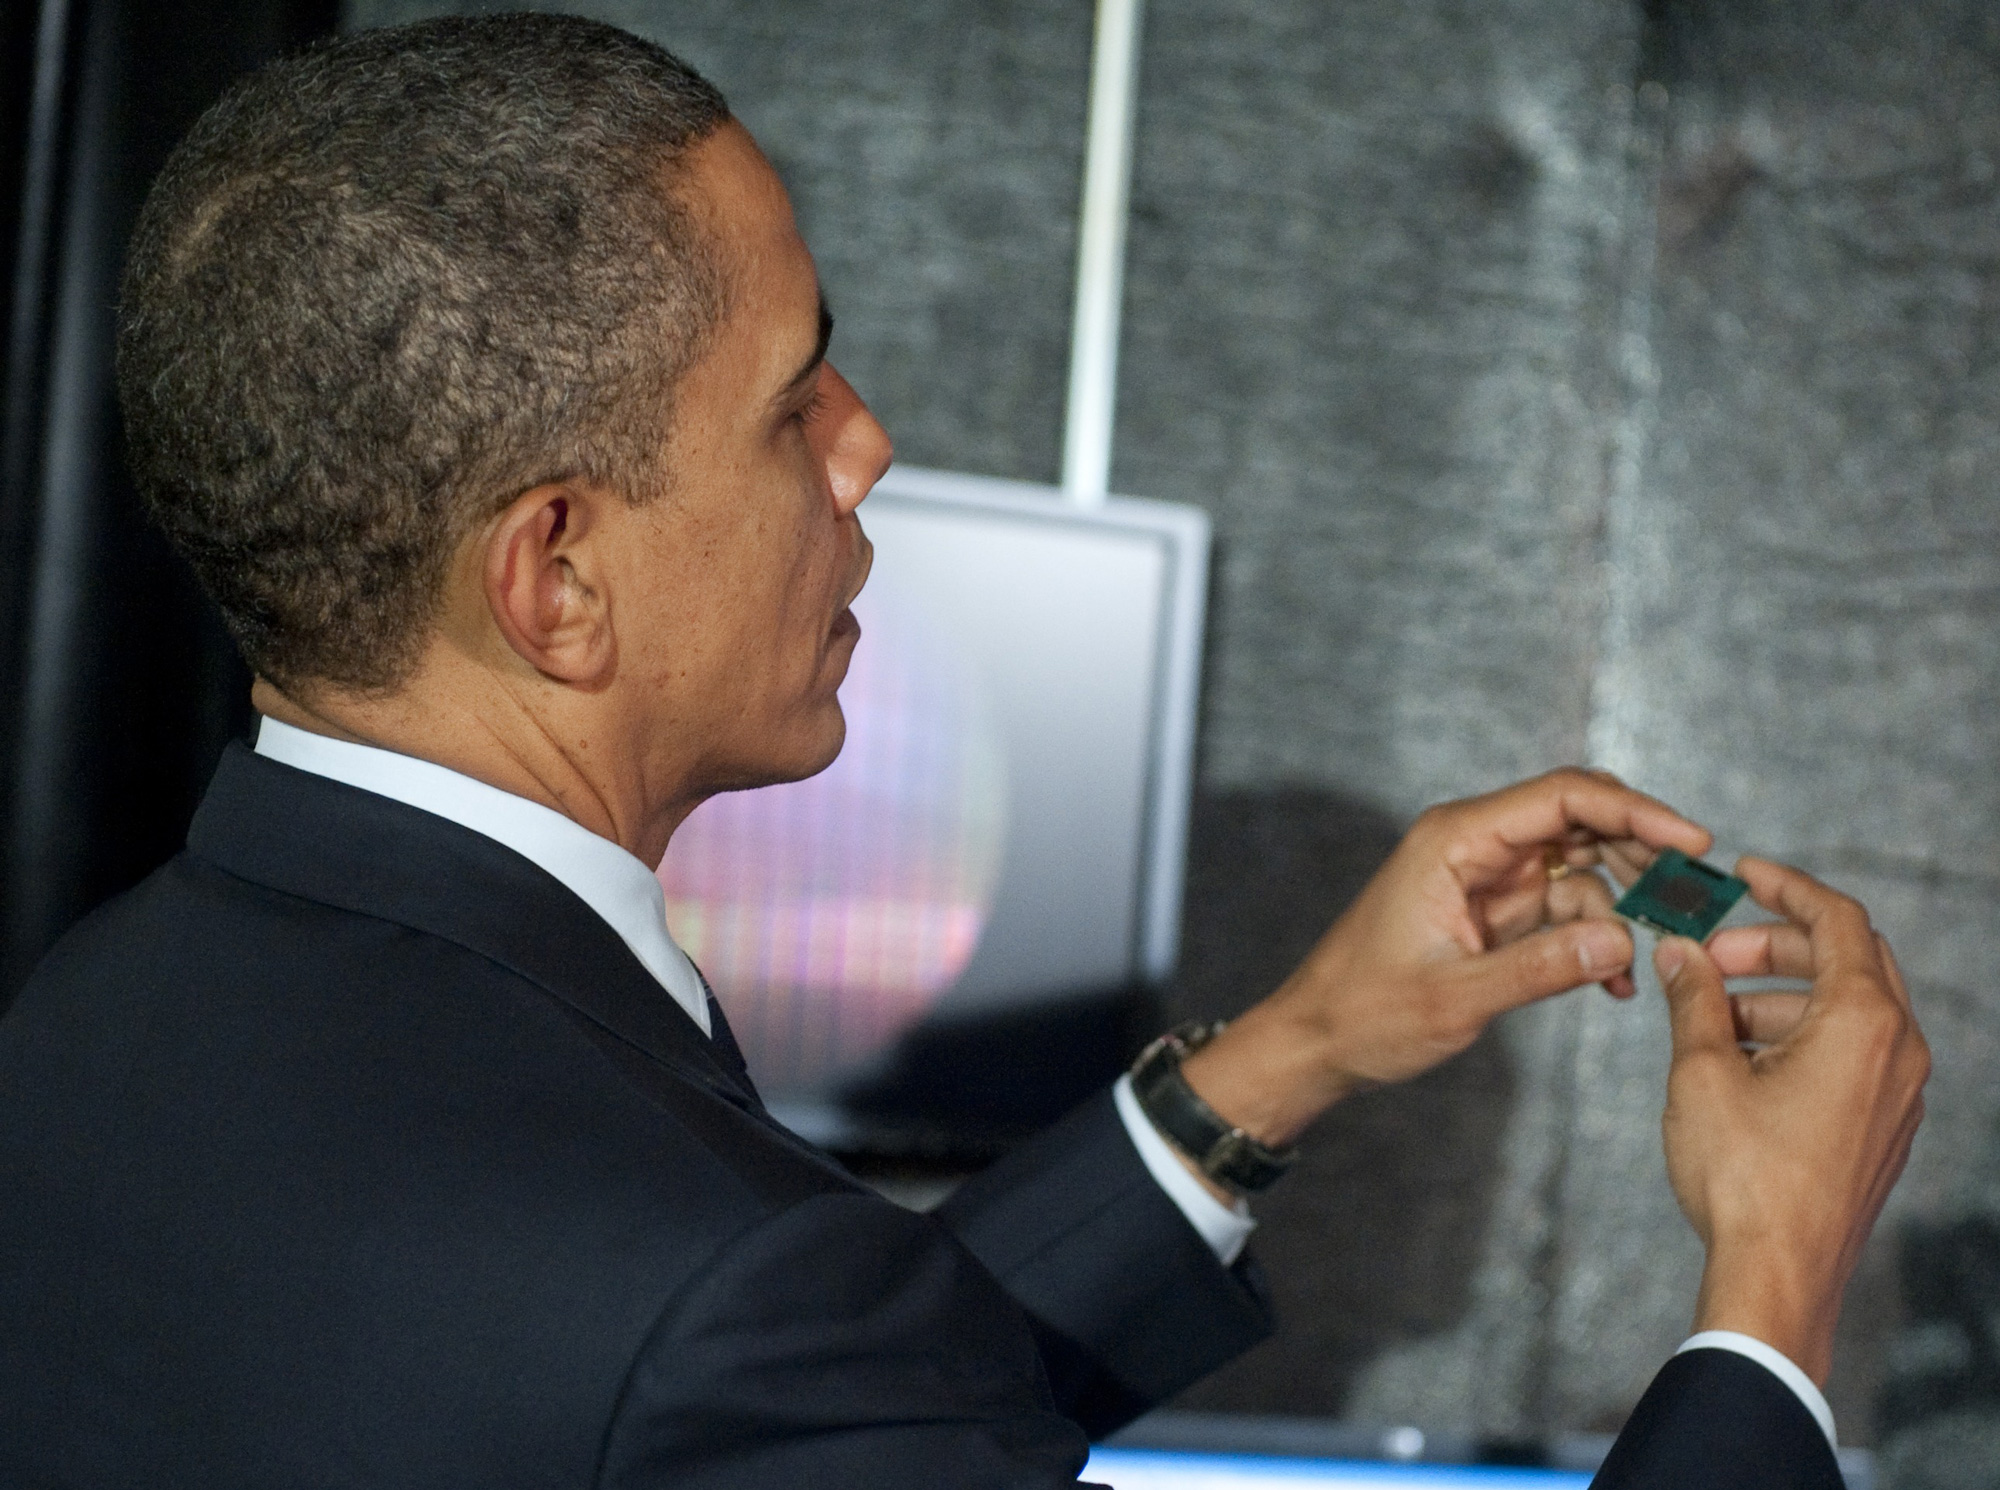 President Obama tours an Intel manufacturing facility in 2011.